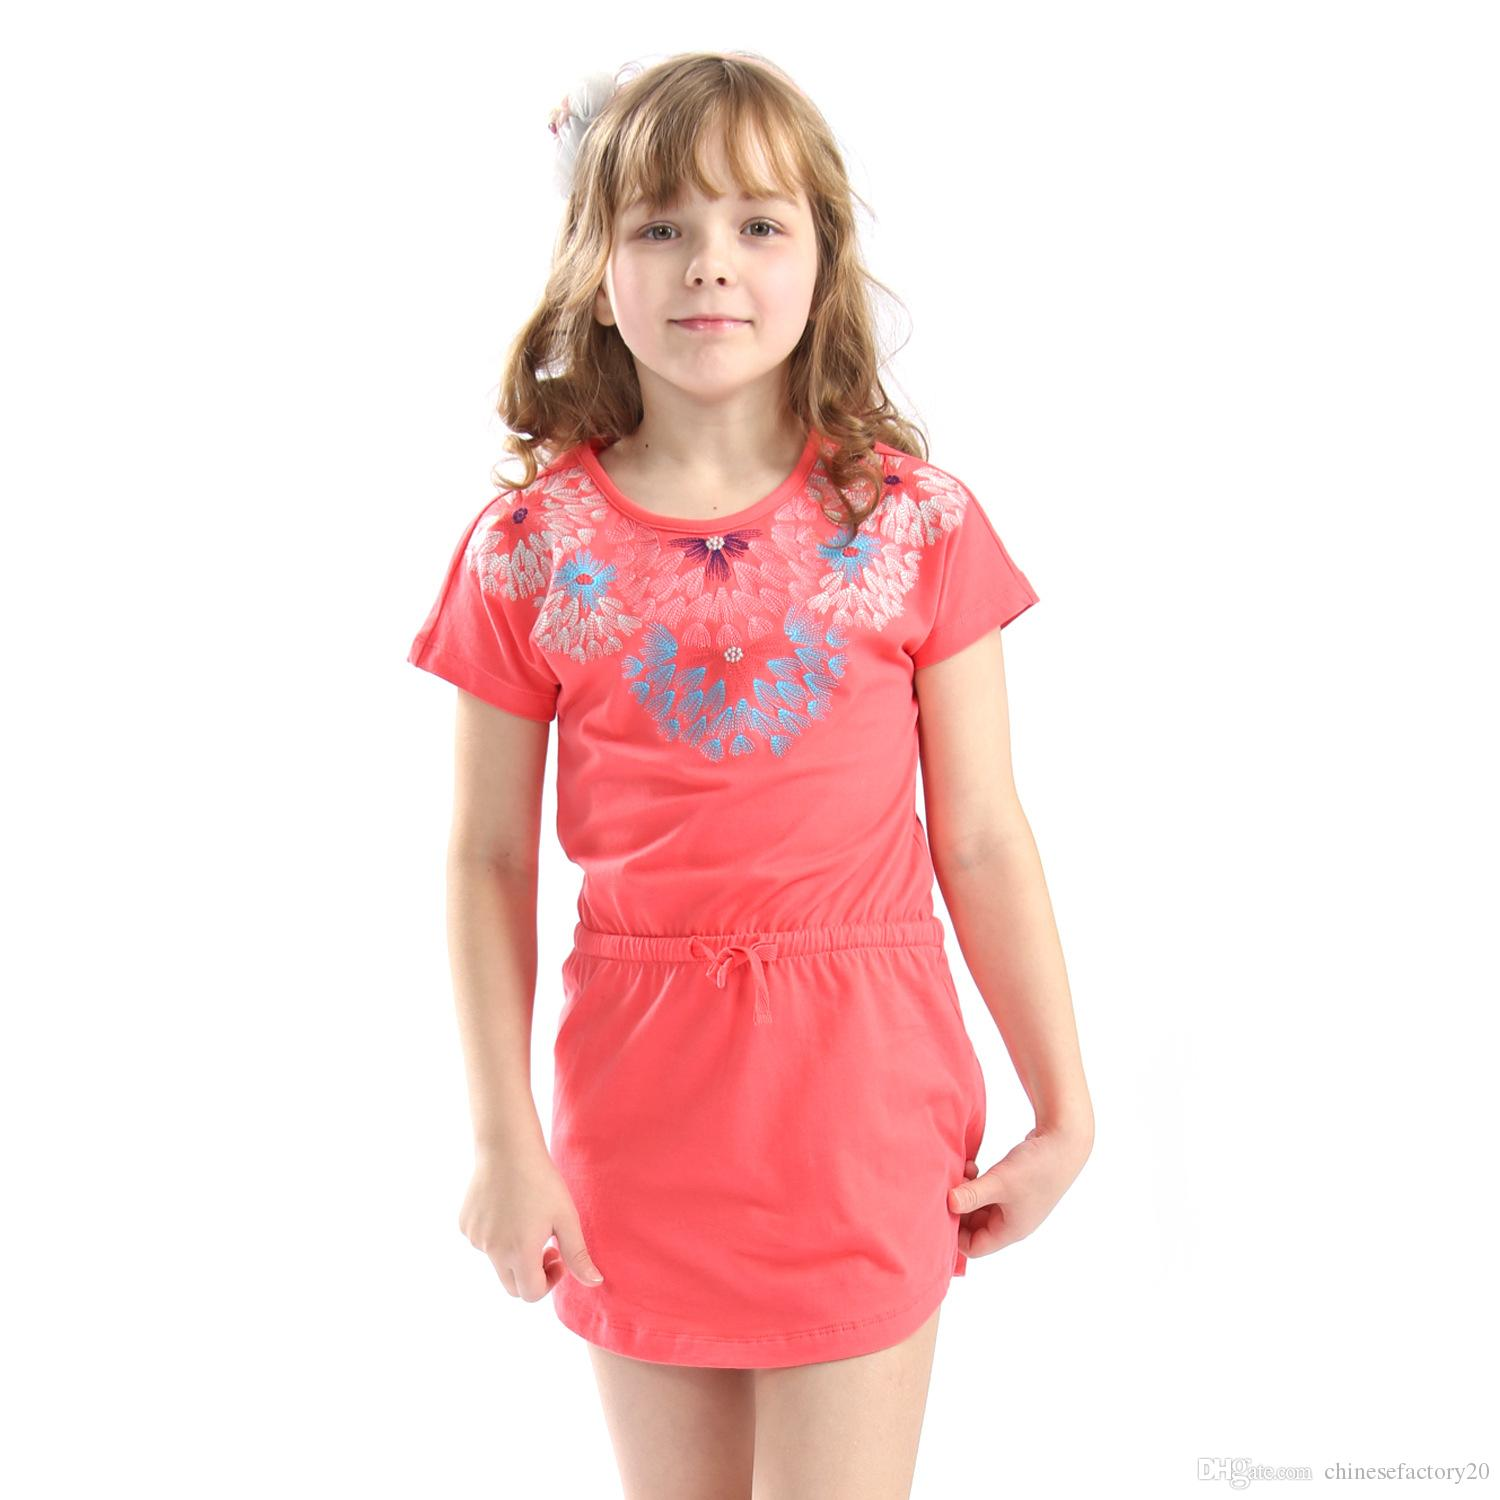 ab34bcee534a 2019 Girls Dresses 100% Cotton Flower Princess Short Sleeve Sundresses Baby  Big Kids Clothes Toddler Summer School Dresses Fashion Clothing From ...